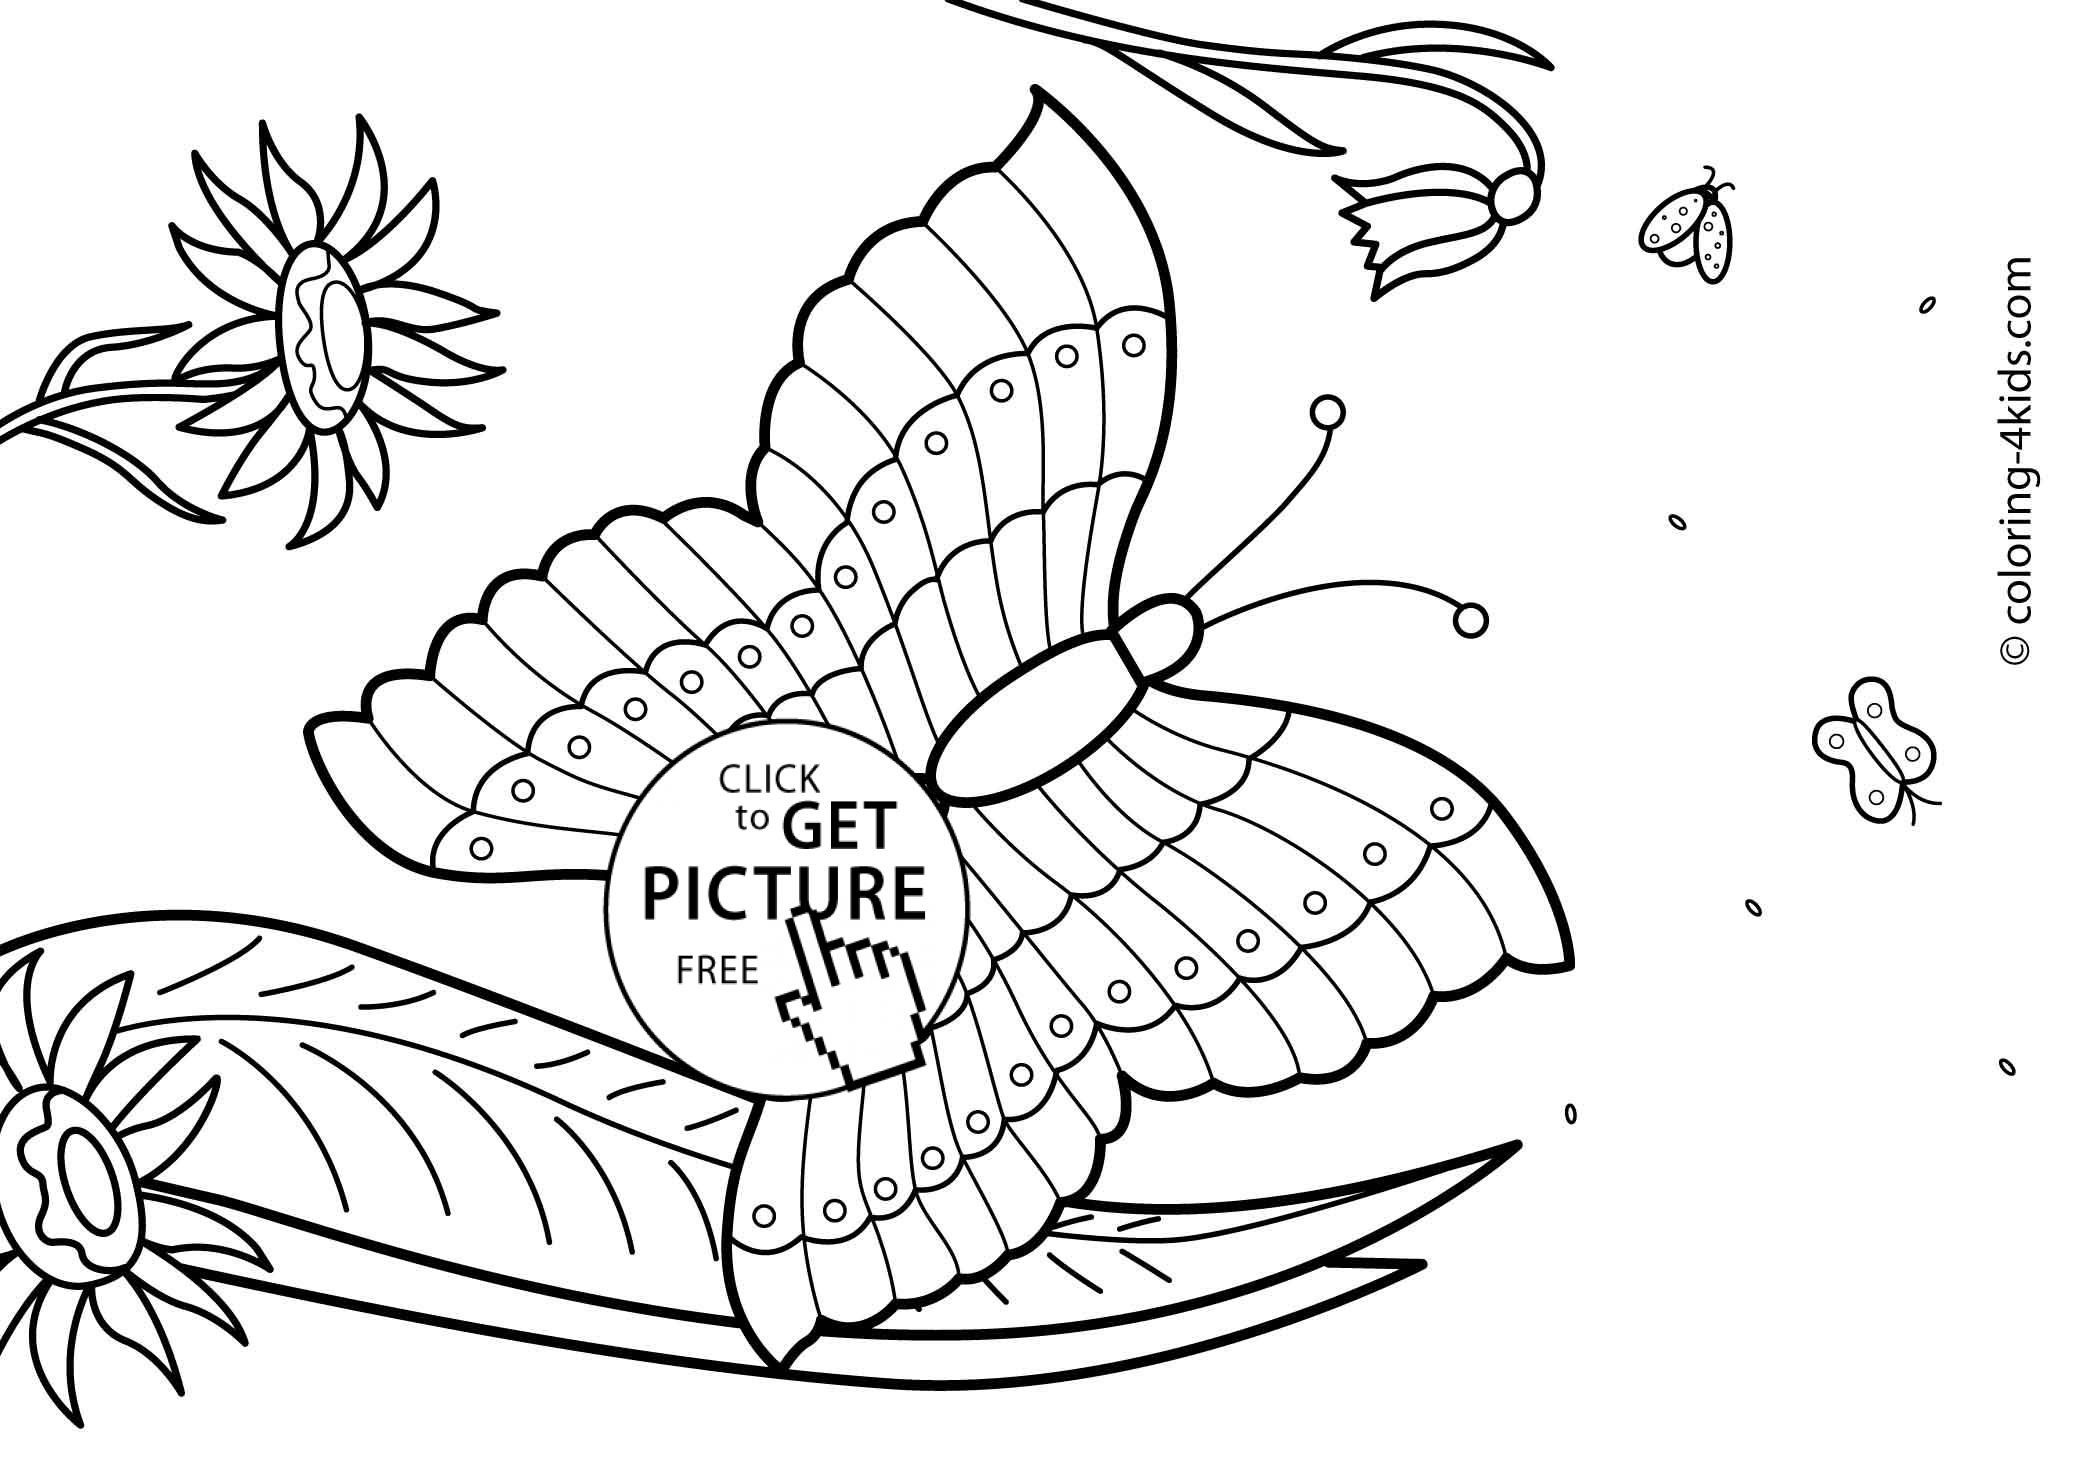 Butterfly Summer Coloring Pages For Kids, Free, Printable - Coloring - Summer Coloring Sheets Free Printable